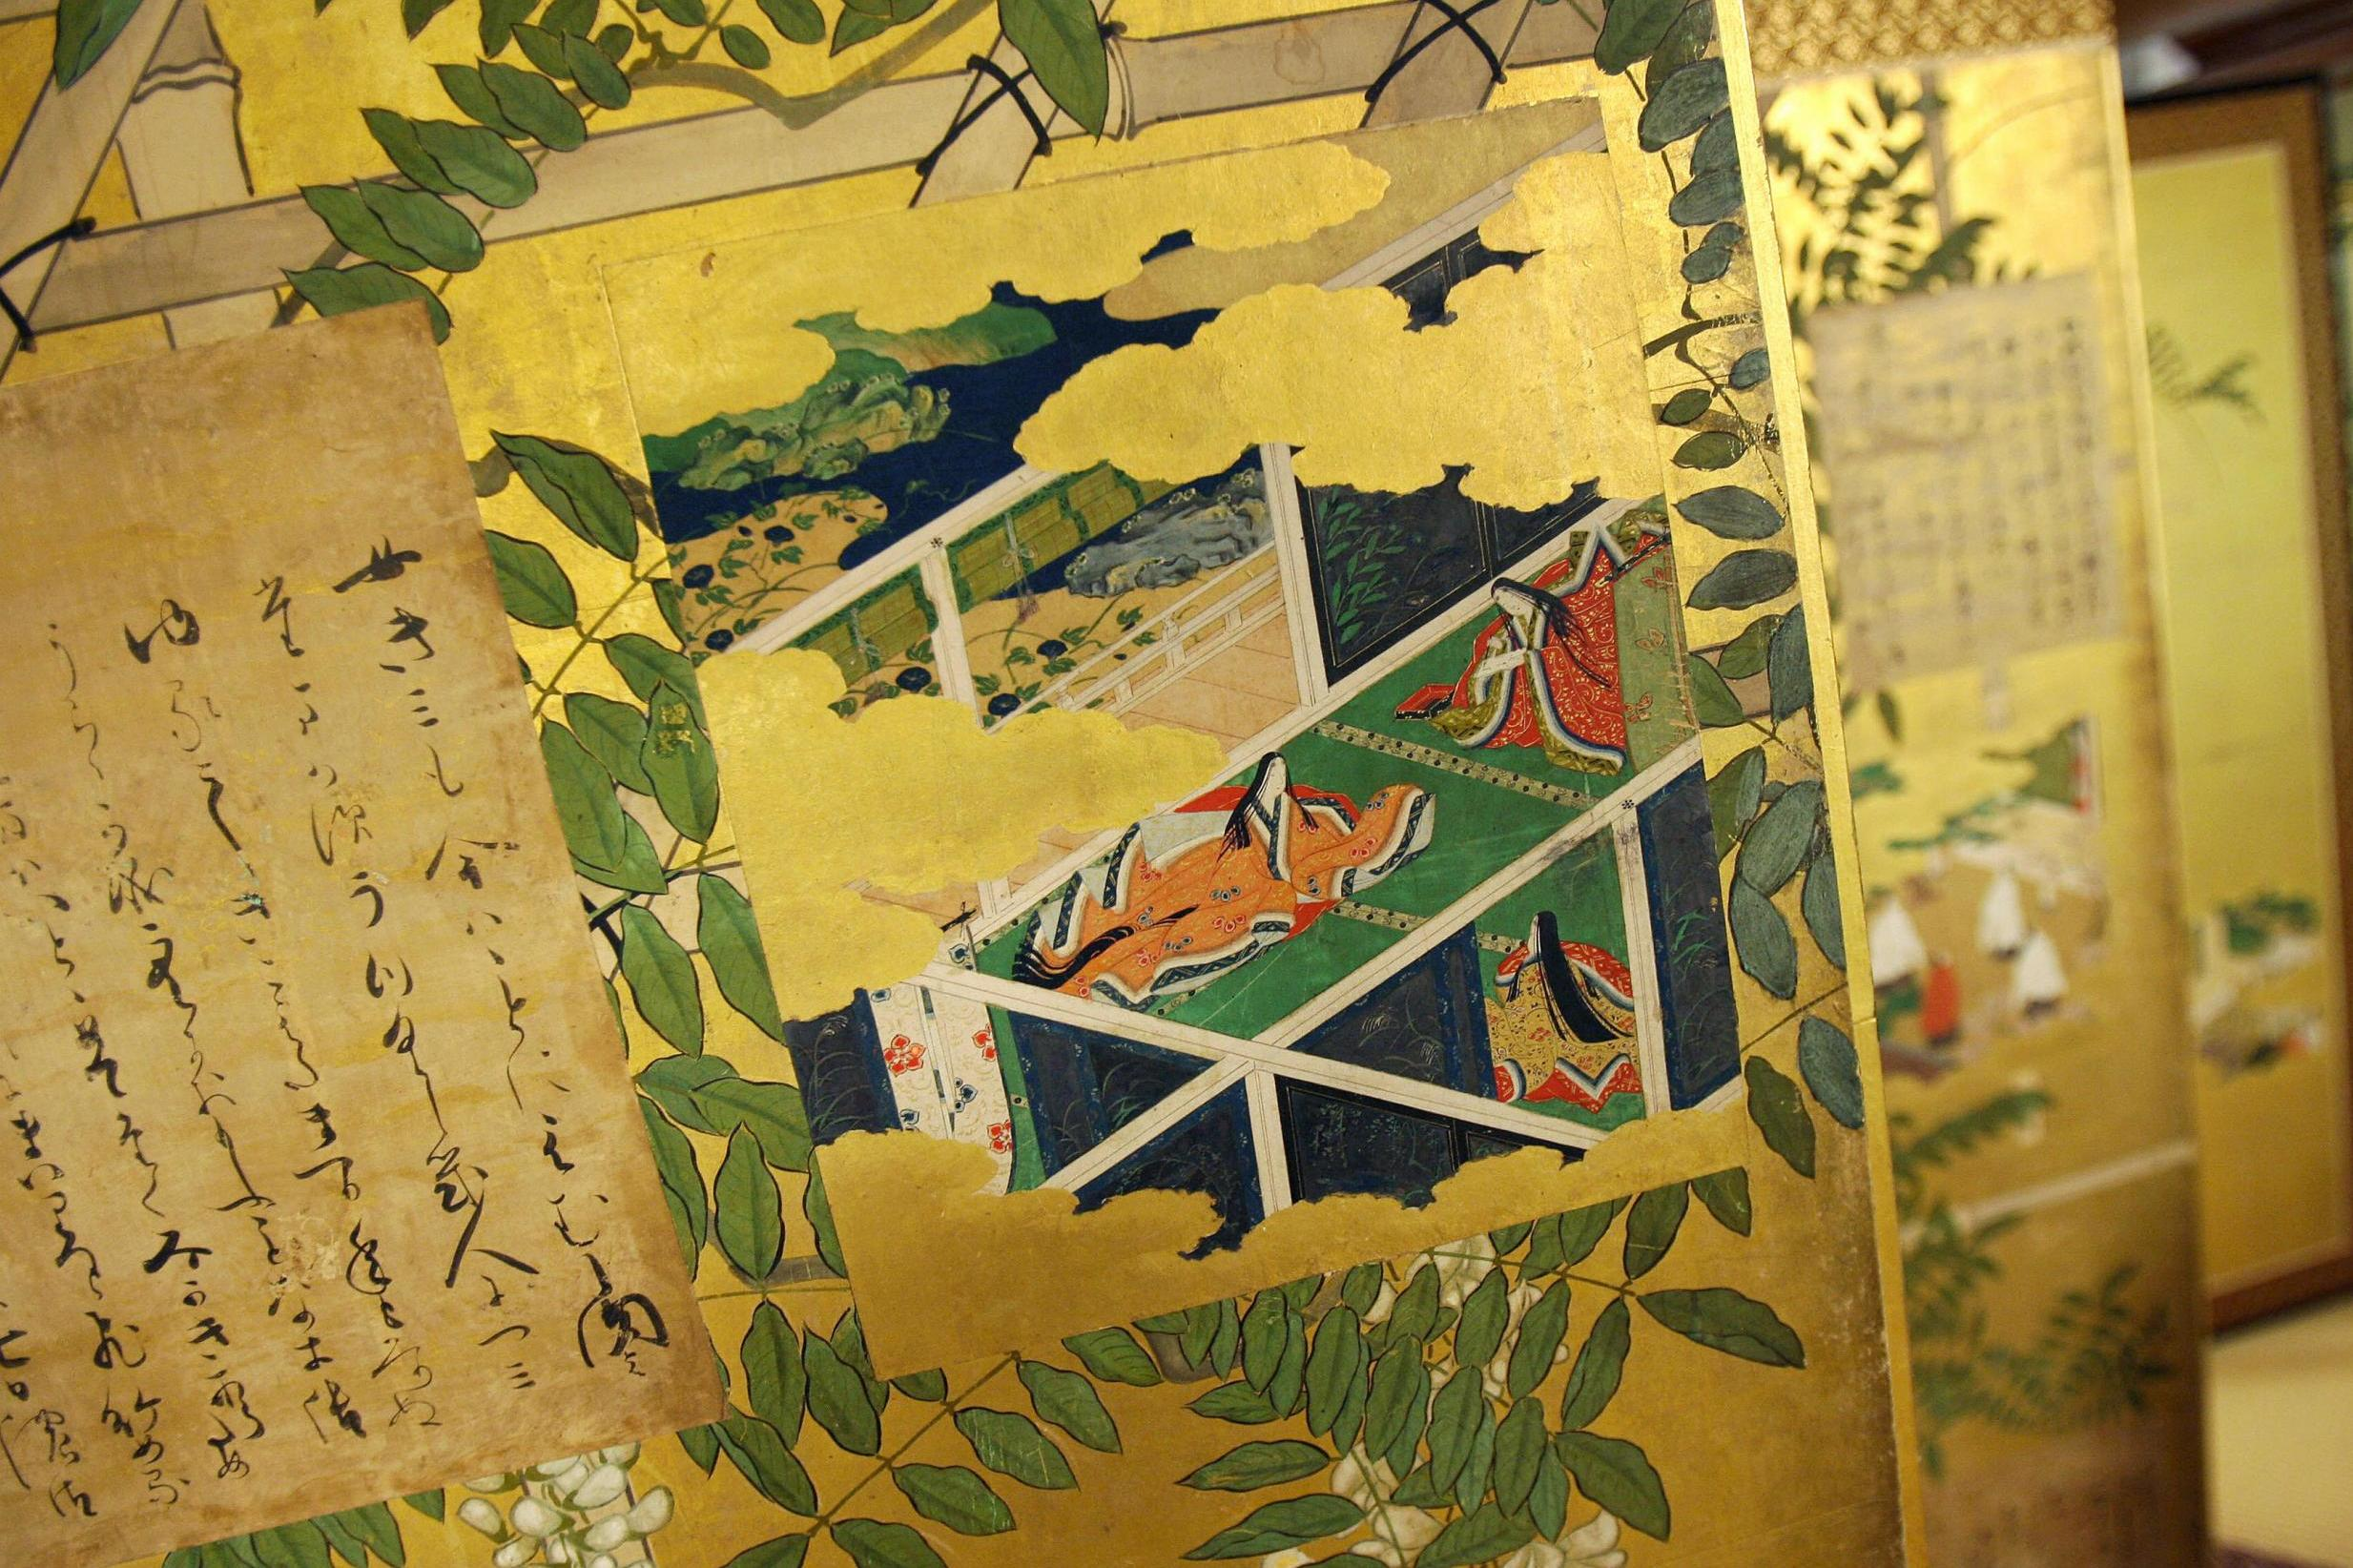 Lost chapter from 'world's first novel' found in Tokyo home